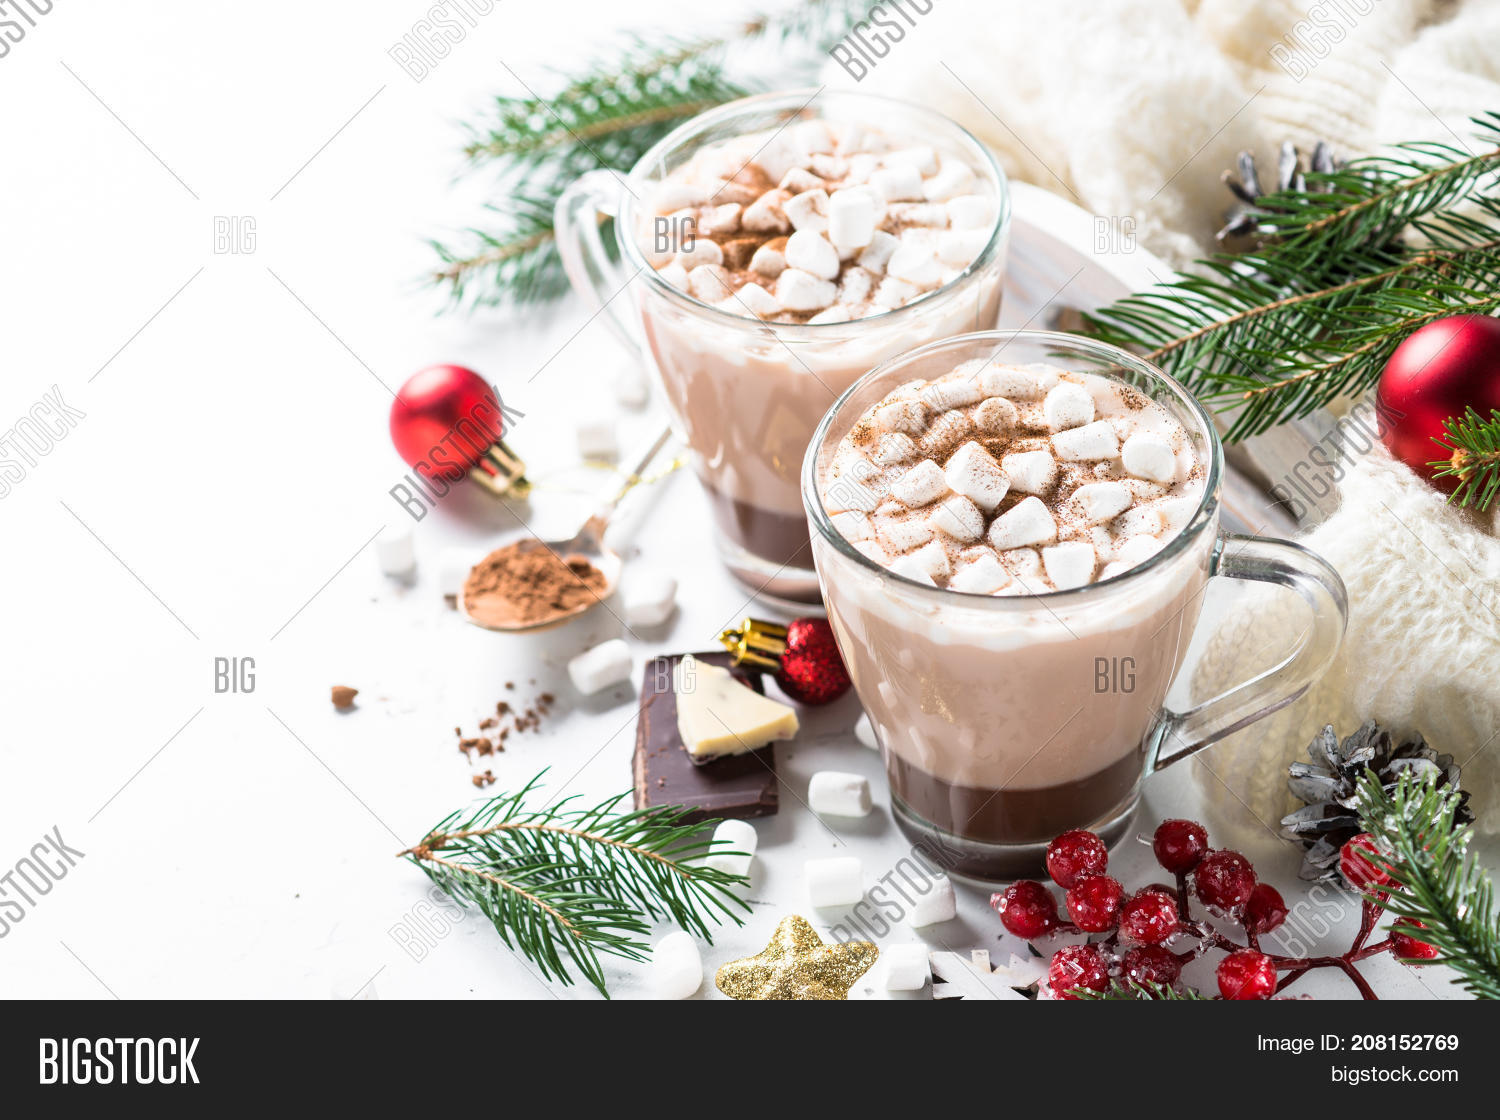 Winter Hot Drink. Image & Photo (Free Trial) | Bigstock